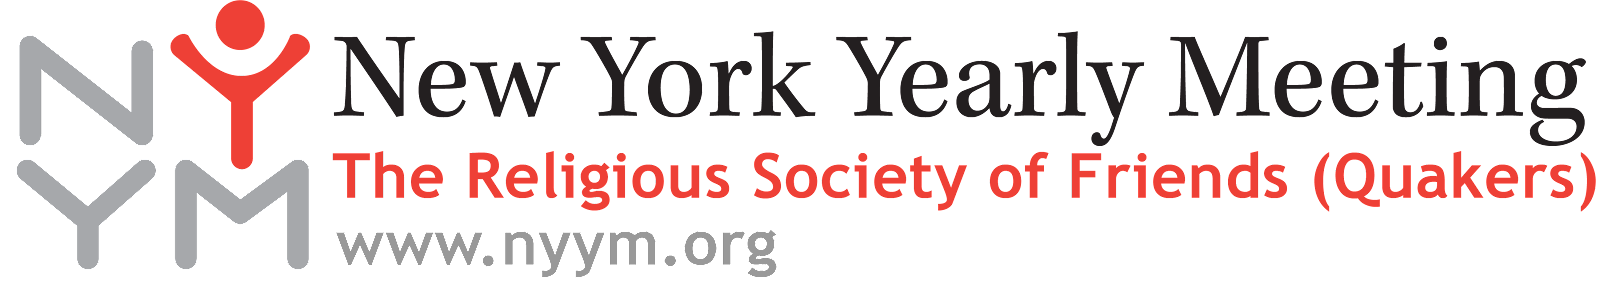 New York Yearly Meeting of the Religious Society of Friends